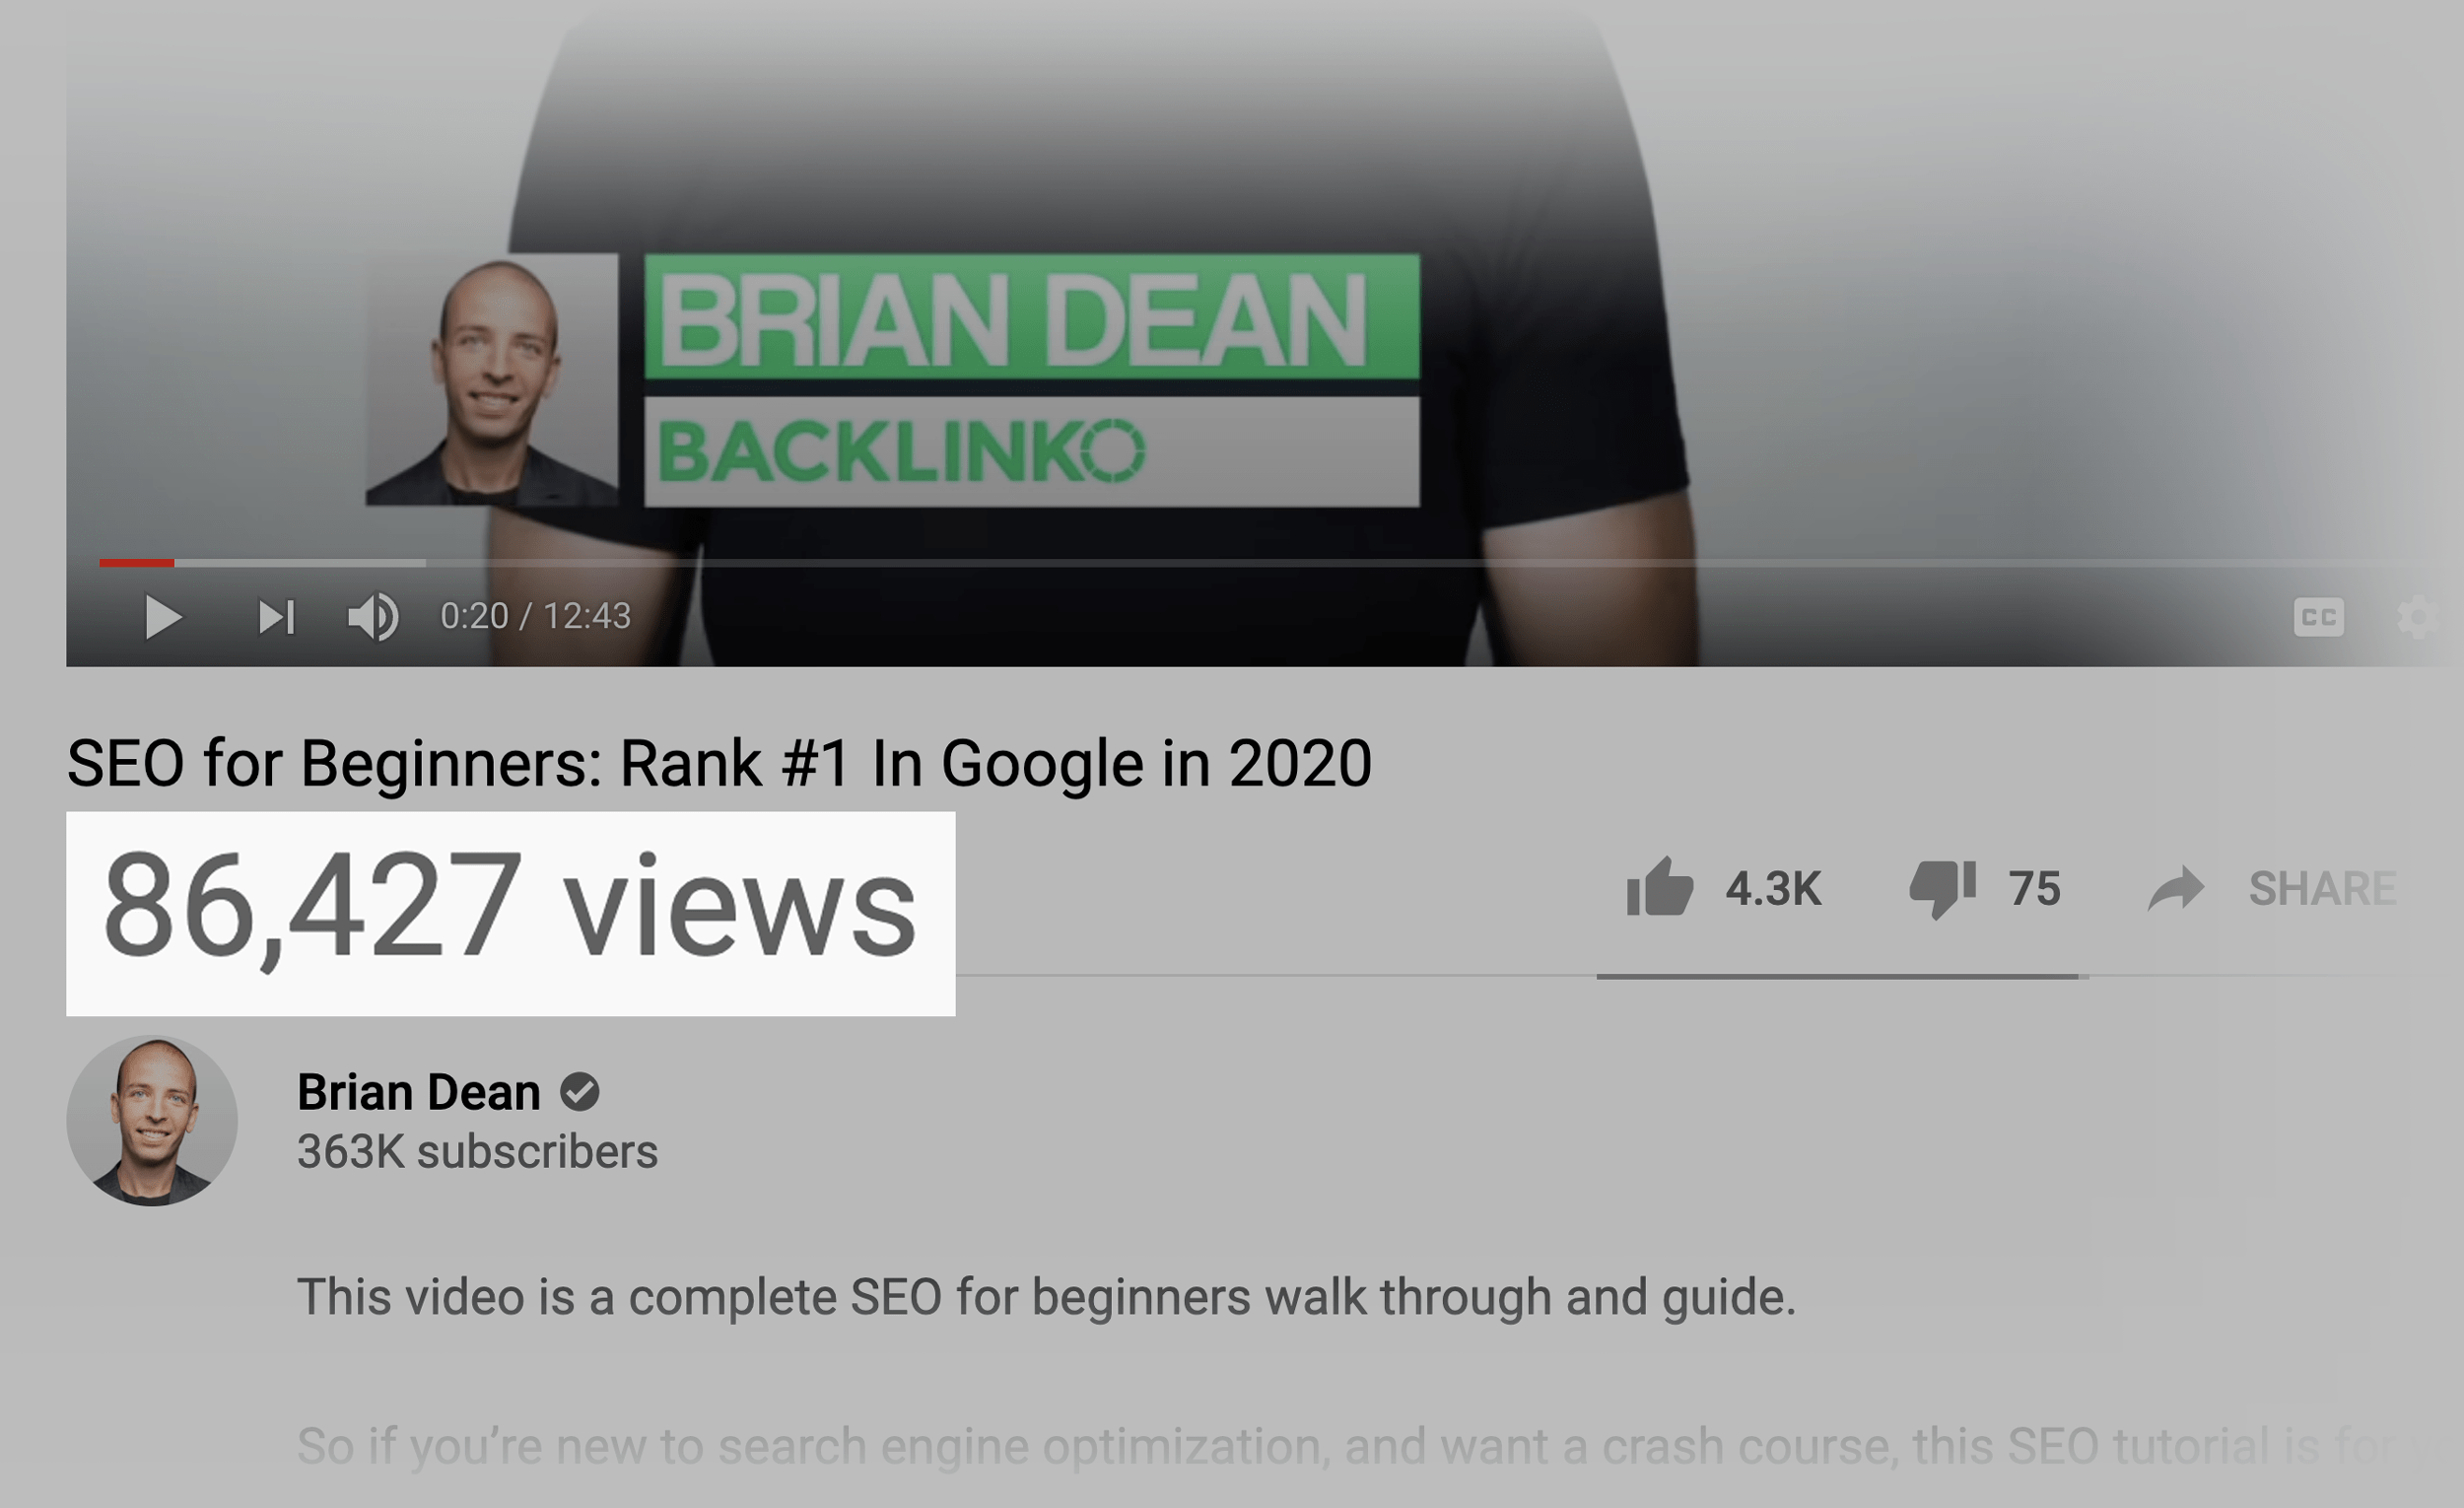 SEO For Beginners YouTube Video View Count